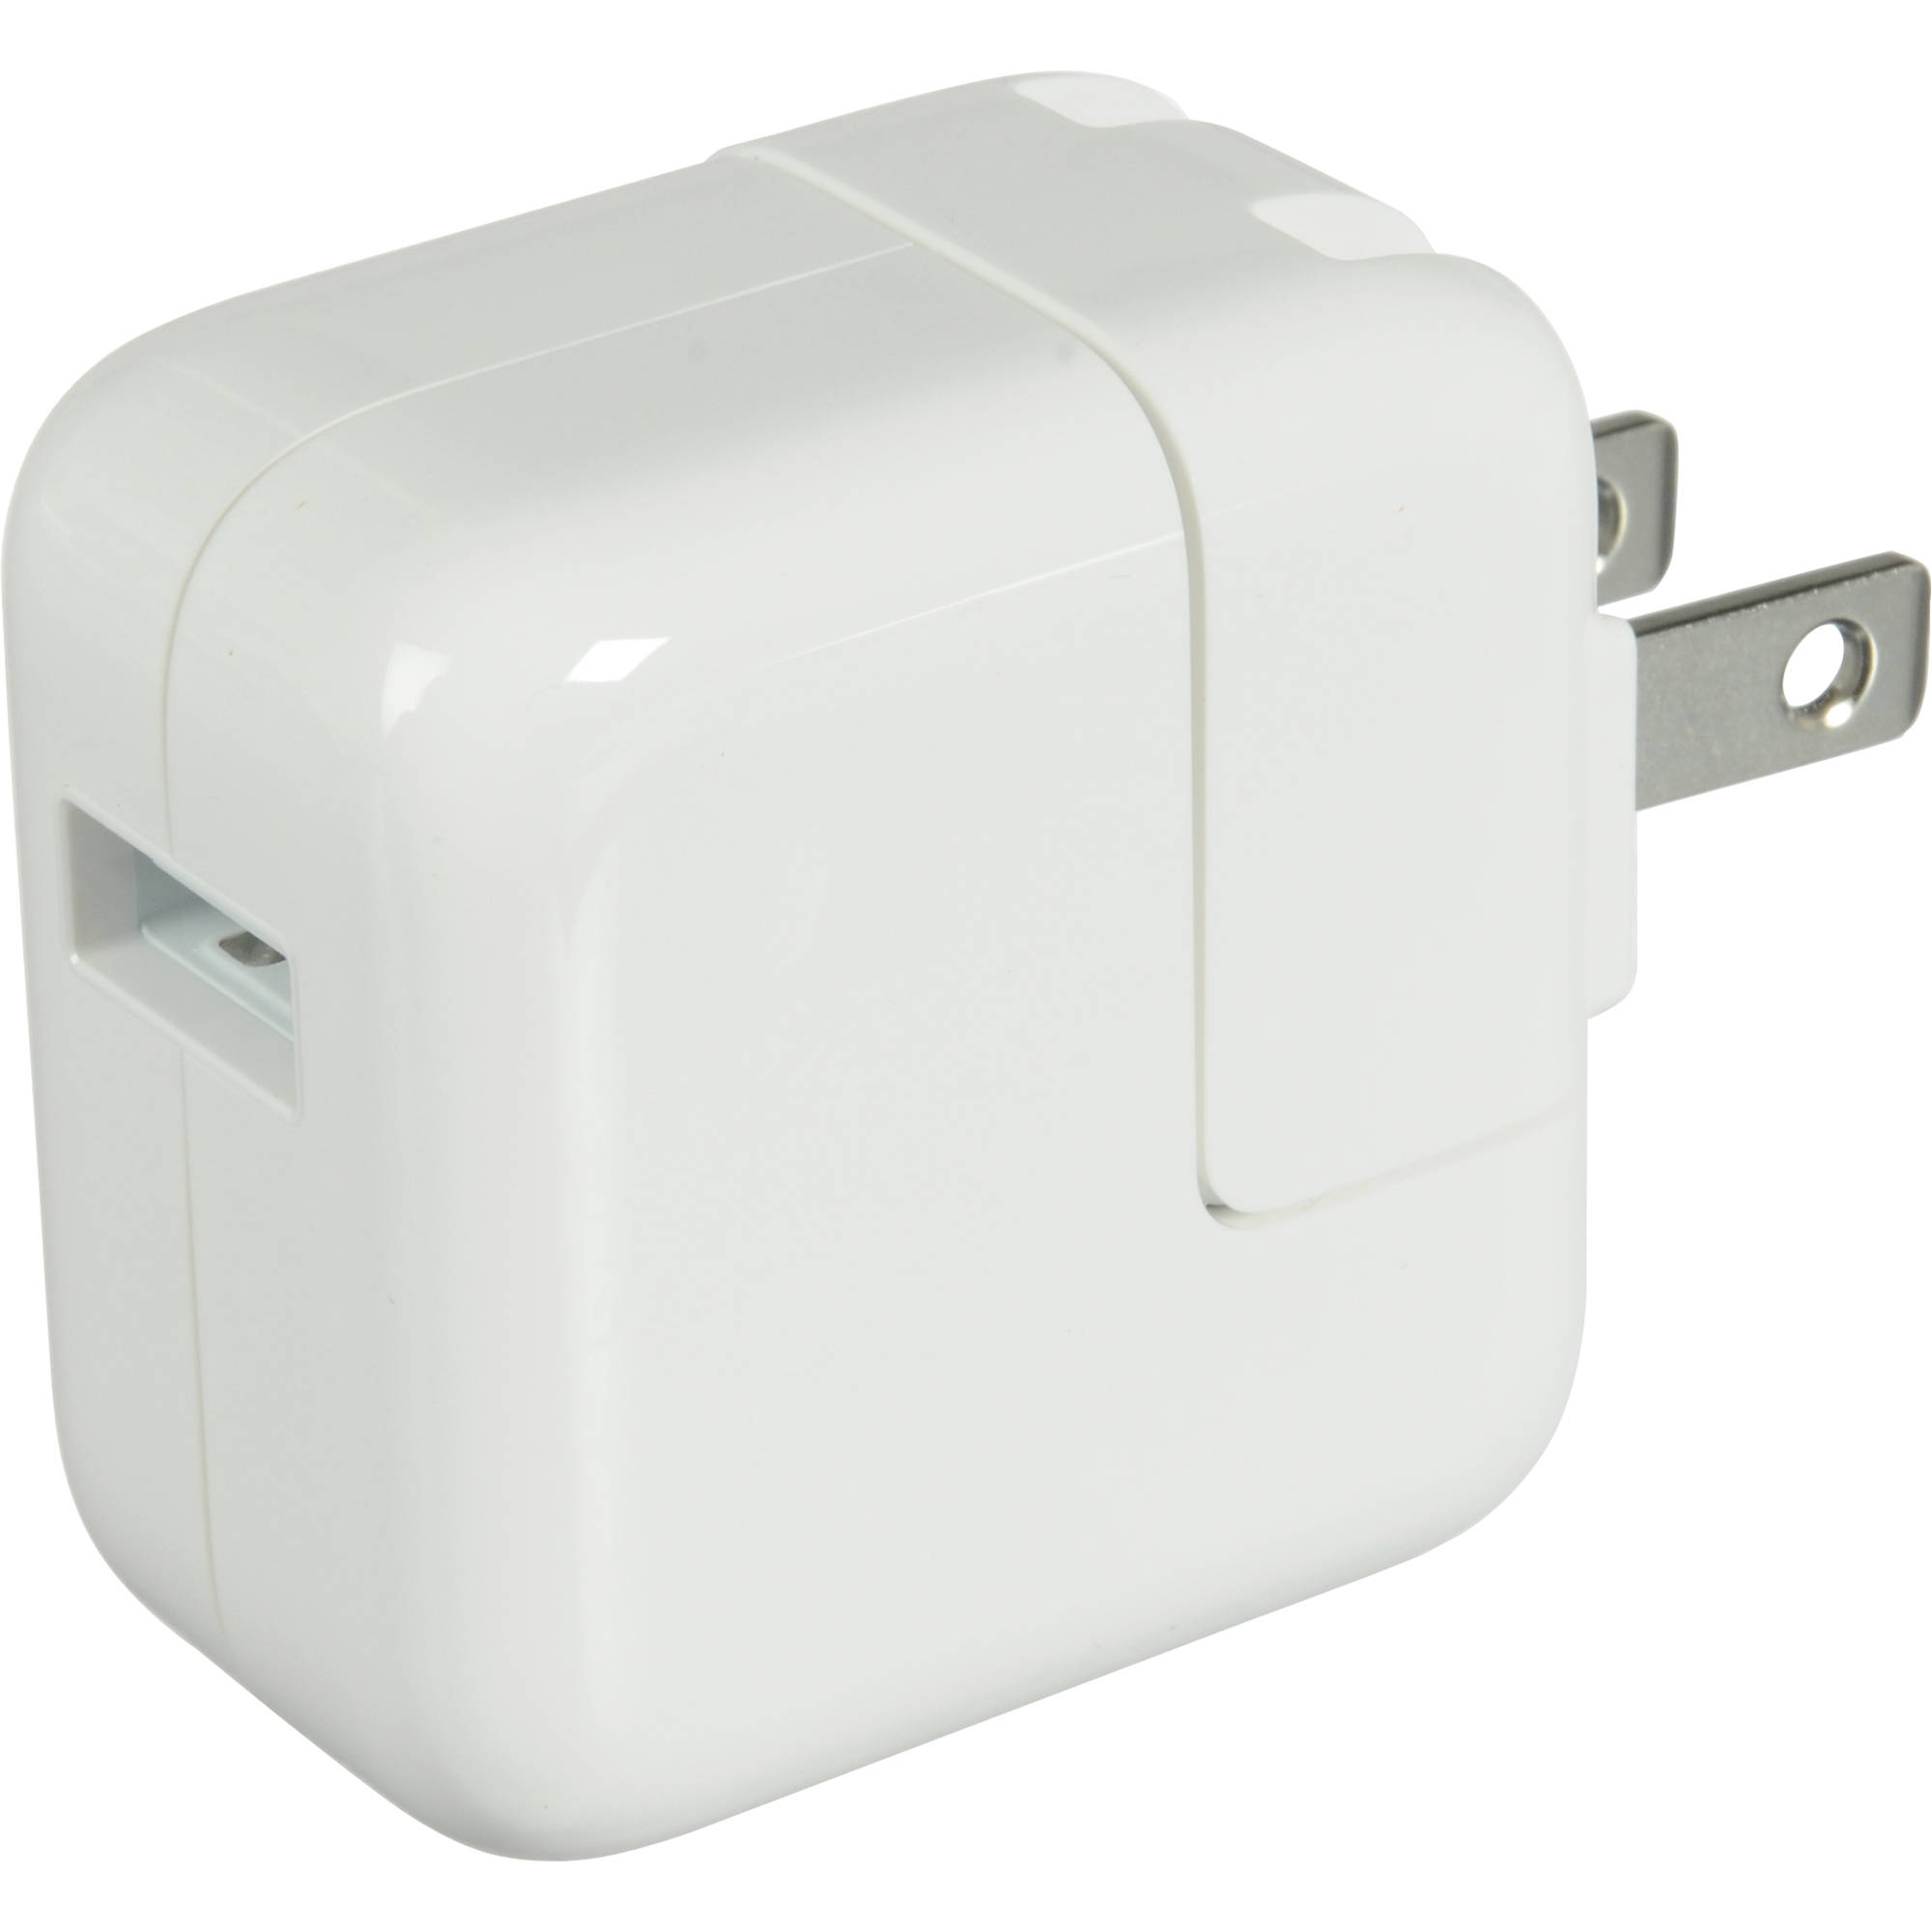 Apple 10W Power Adapter